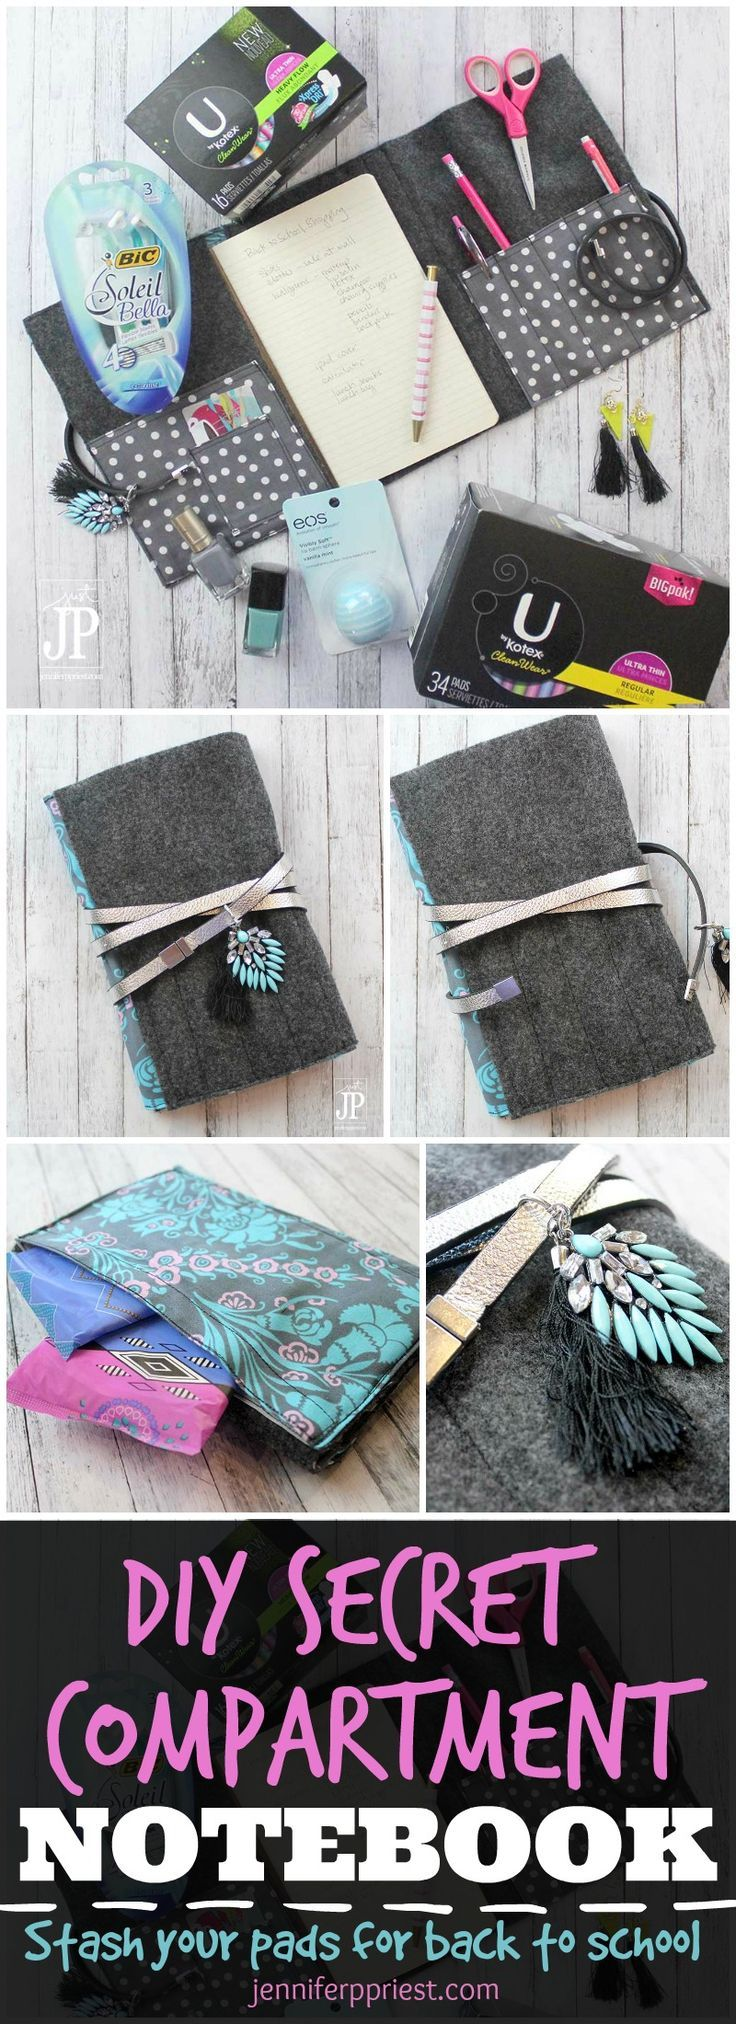 How to make a discreet period kit for your TEEN GIRL - http://www.jenniferppriest.com/period-kit-for-school-diy-secret-compartment-notebook-cover-clutch/ Create a DIY Notebook cover that looks like a planner but has a secret compartment for storing pads l